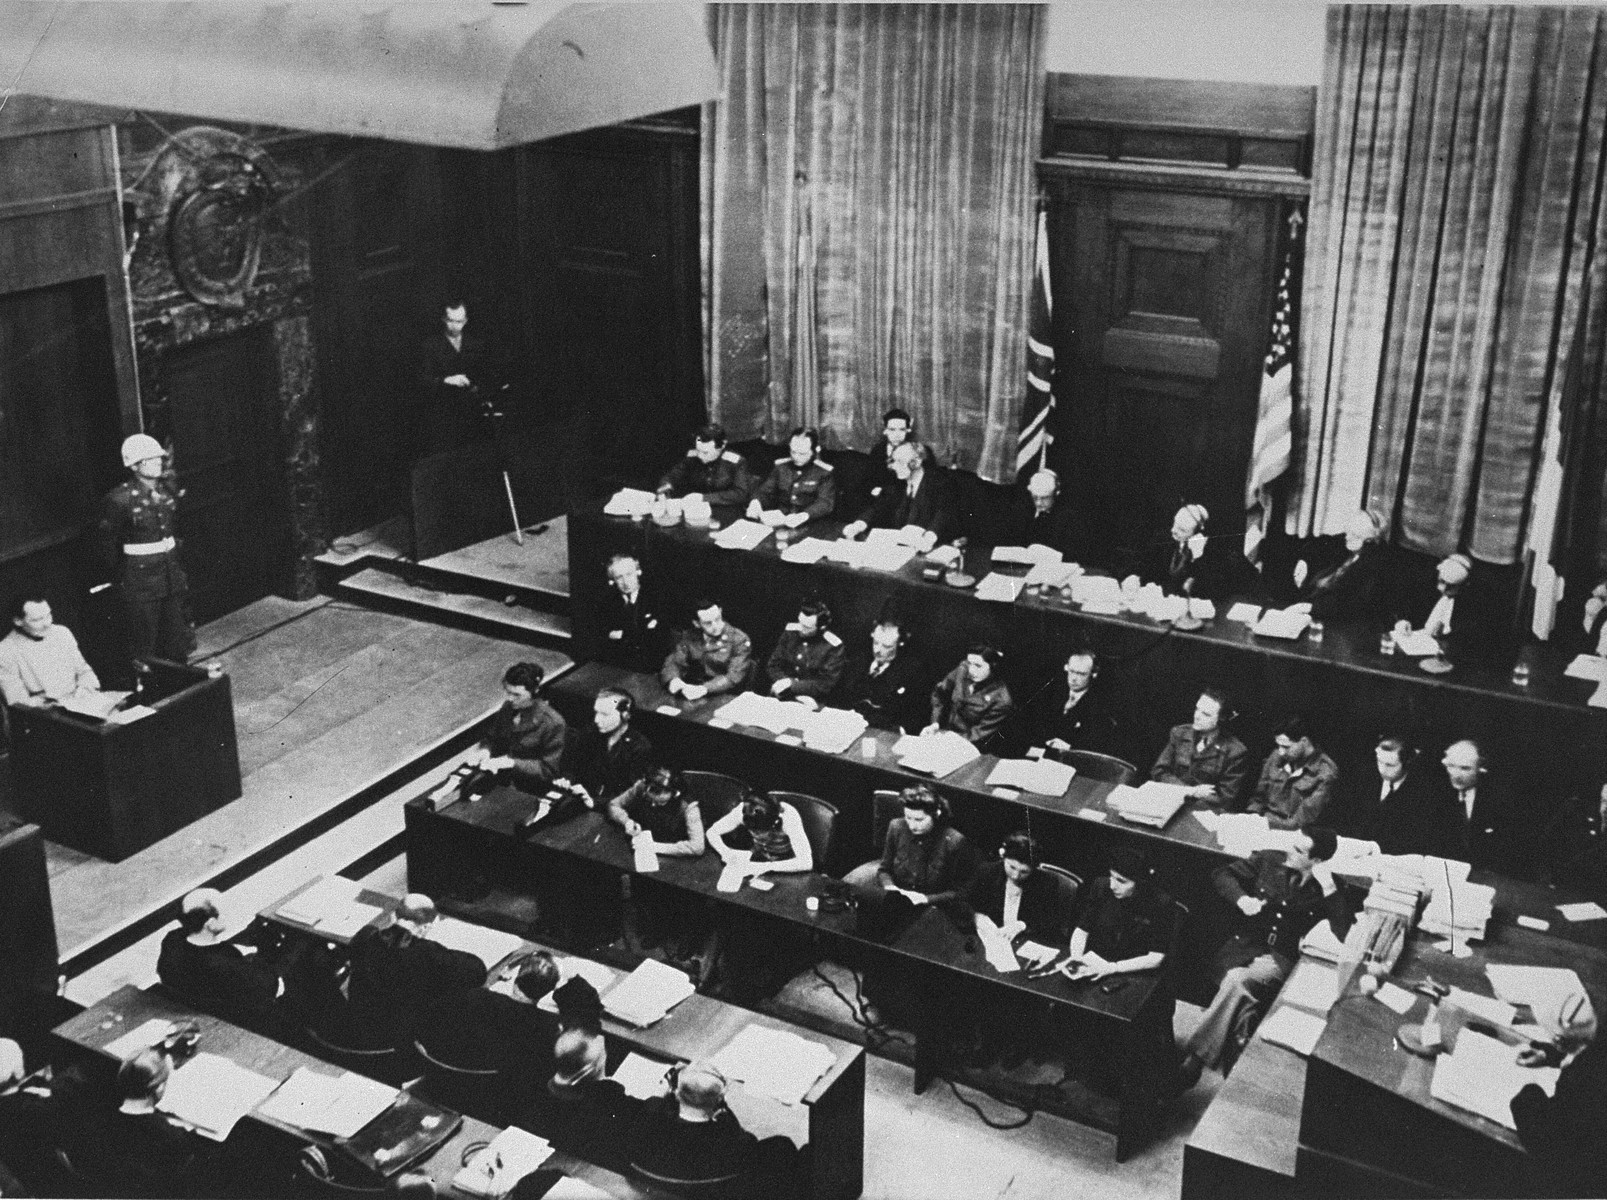 Hermann Goering testifies from the witness box at the International Military Tribunal trial of war criminals at Nuremberg.